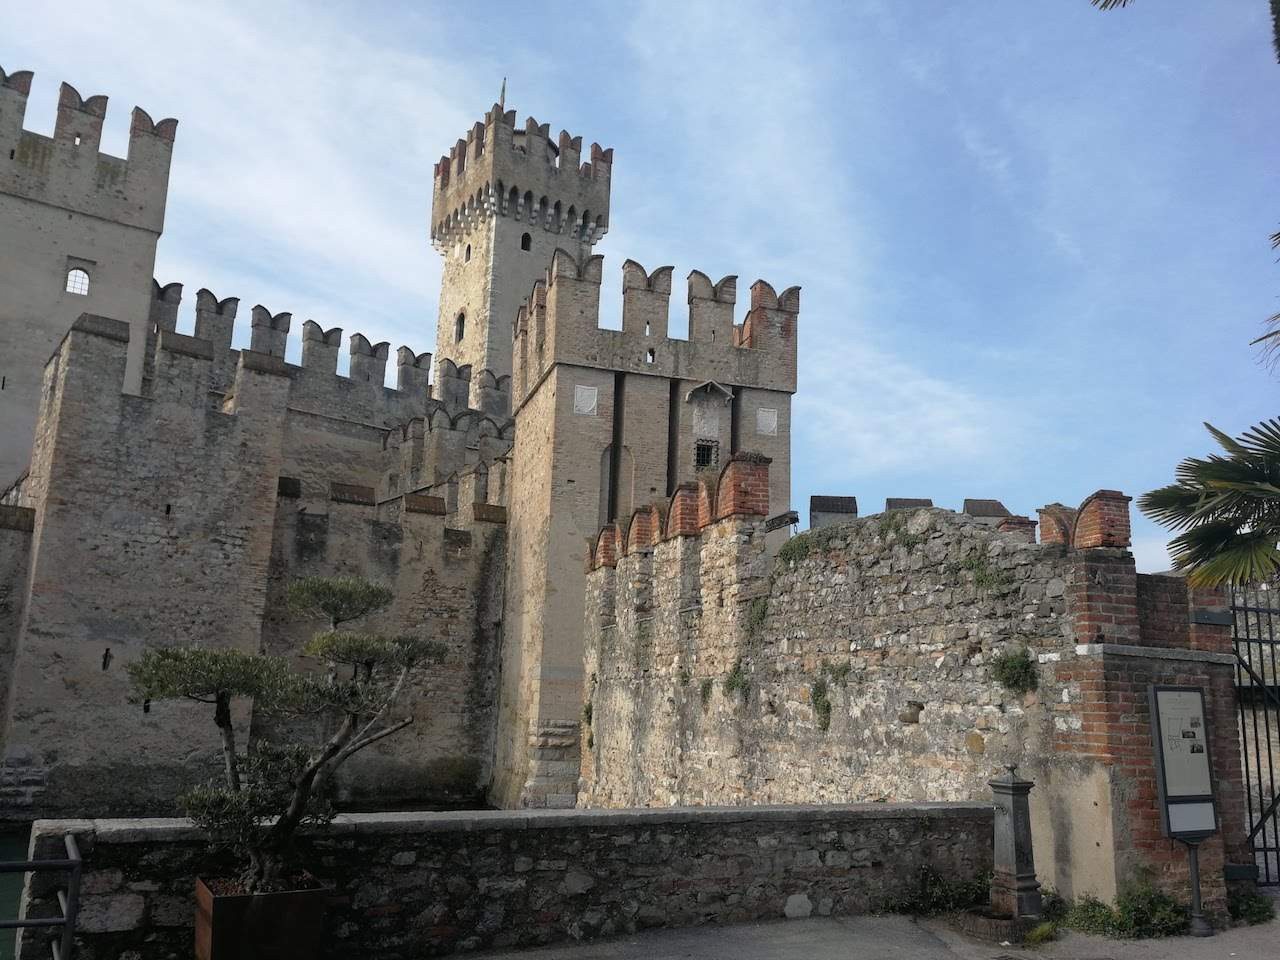 Scaliger castle in Sirmione